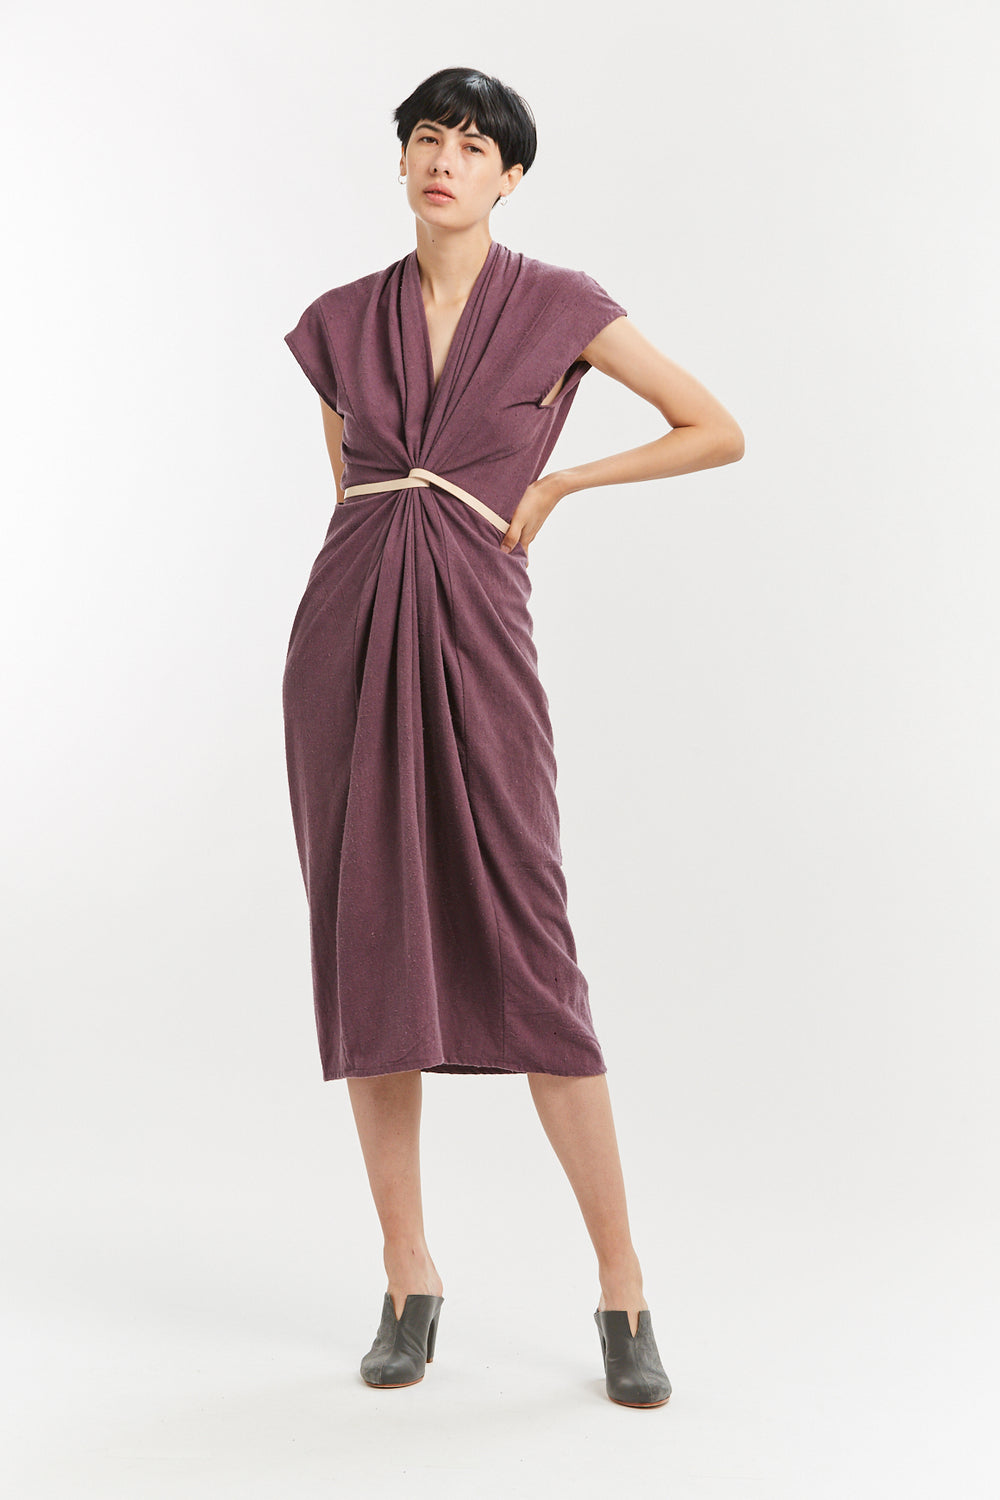 Rare Breed Collection: Knot Dress, Silk Noil in Lira